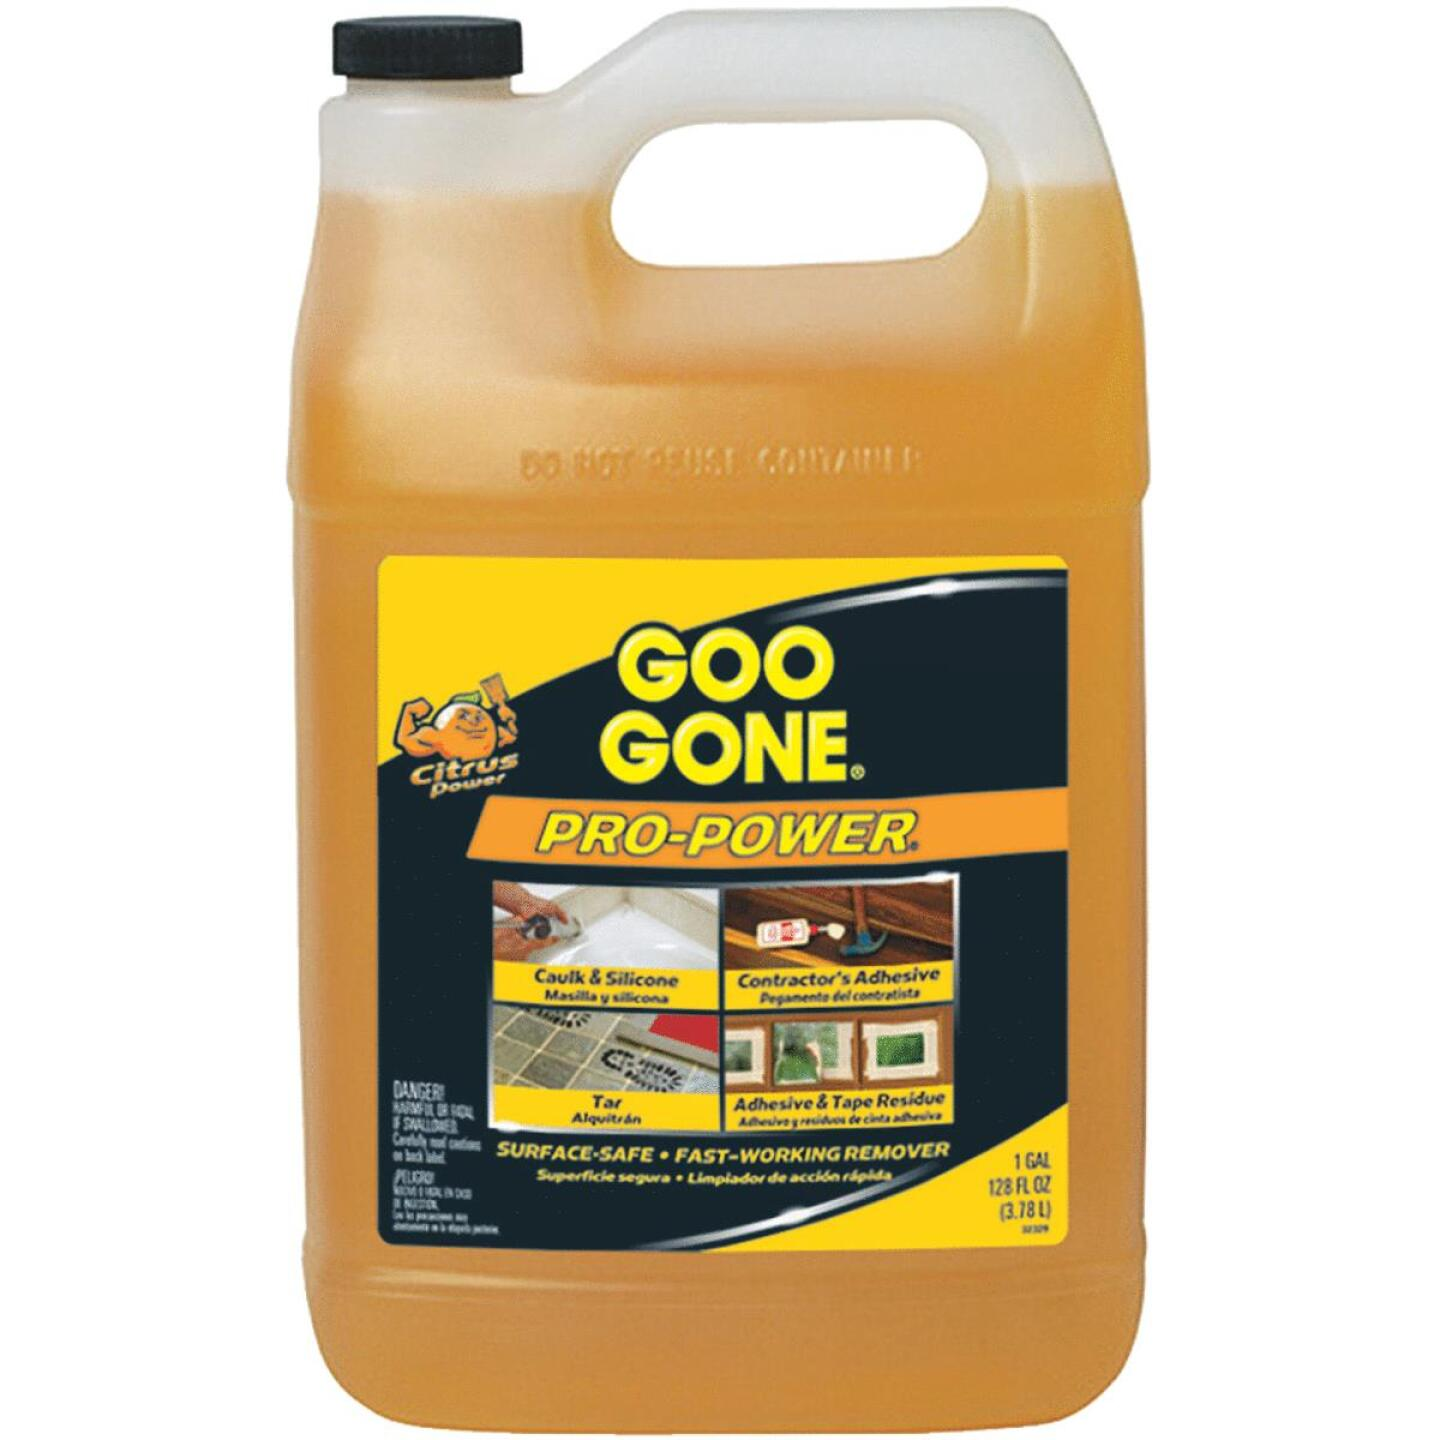 Goo Gone 1 Gal. Pro-Power Adhesive Remover Image 77